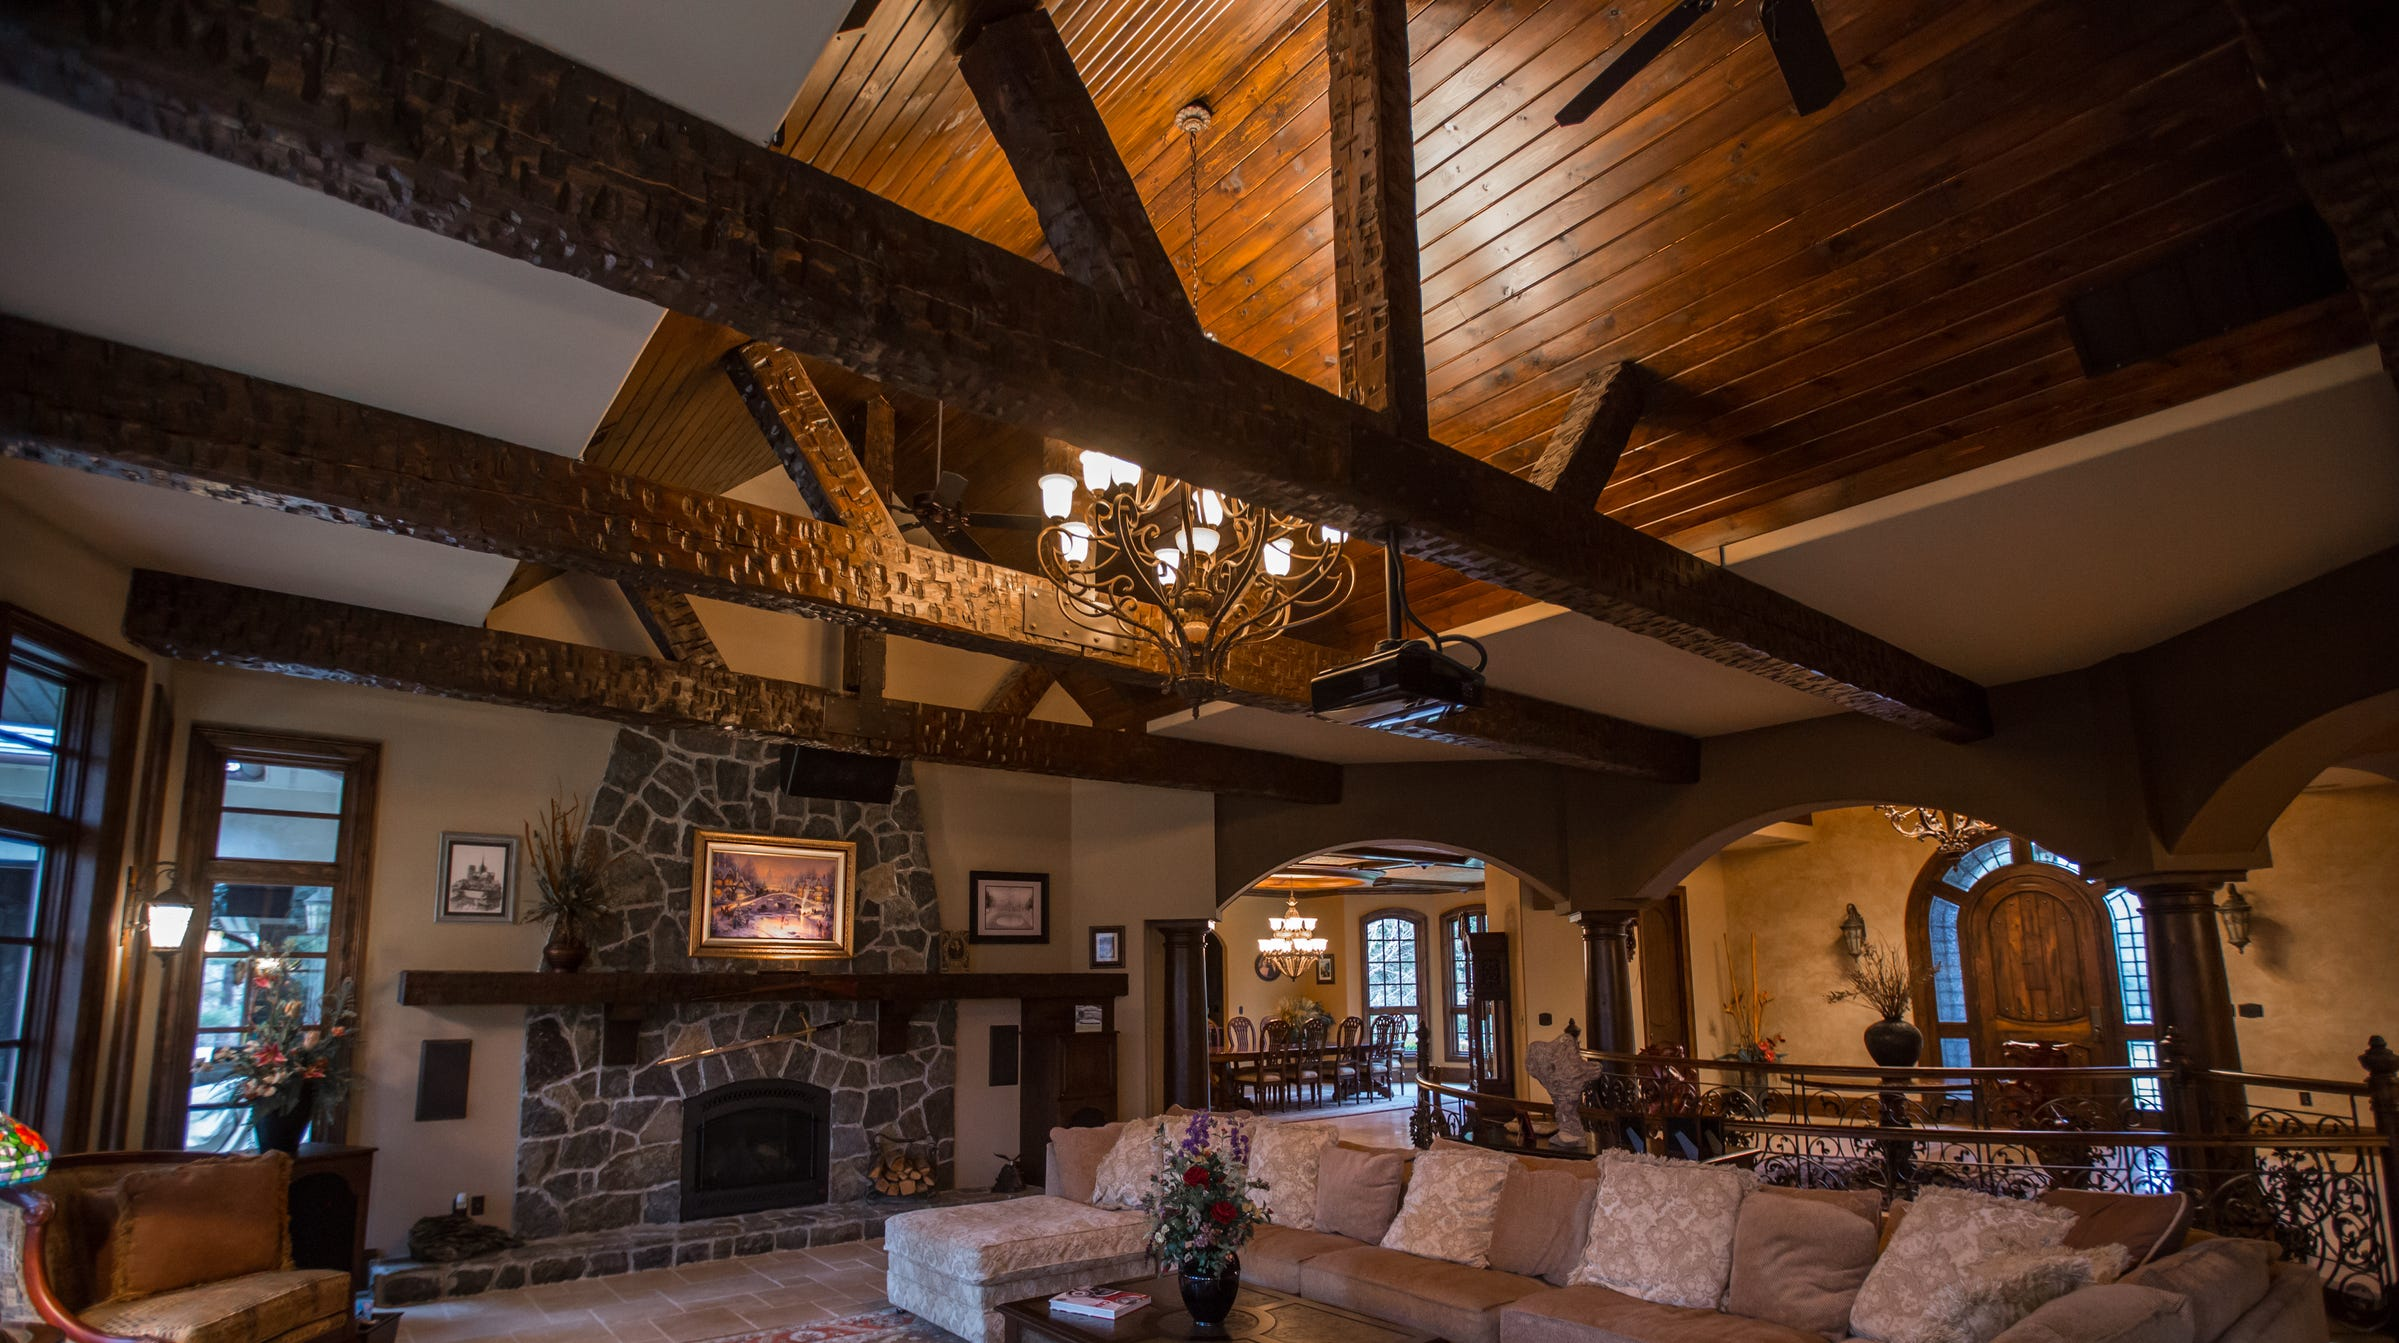 The living room, which the owners call the great room, has a fireplace of blue mountain granite, an alder-lined cathedral ceiling, rough-hewn beams and a view of the foyer. A 10-foot movie screen drops down in front of the fireplace.